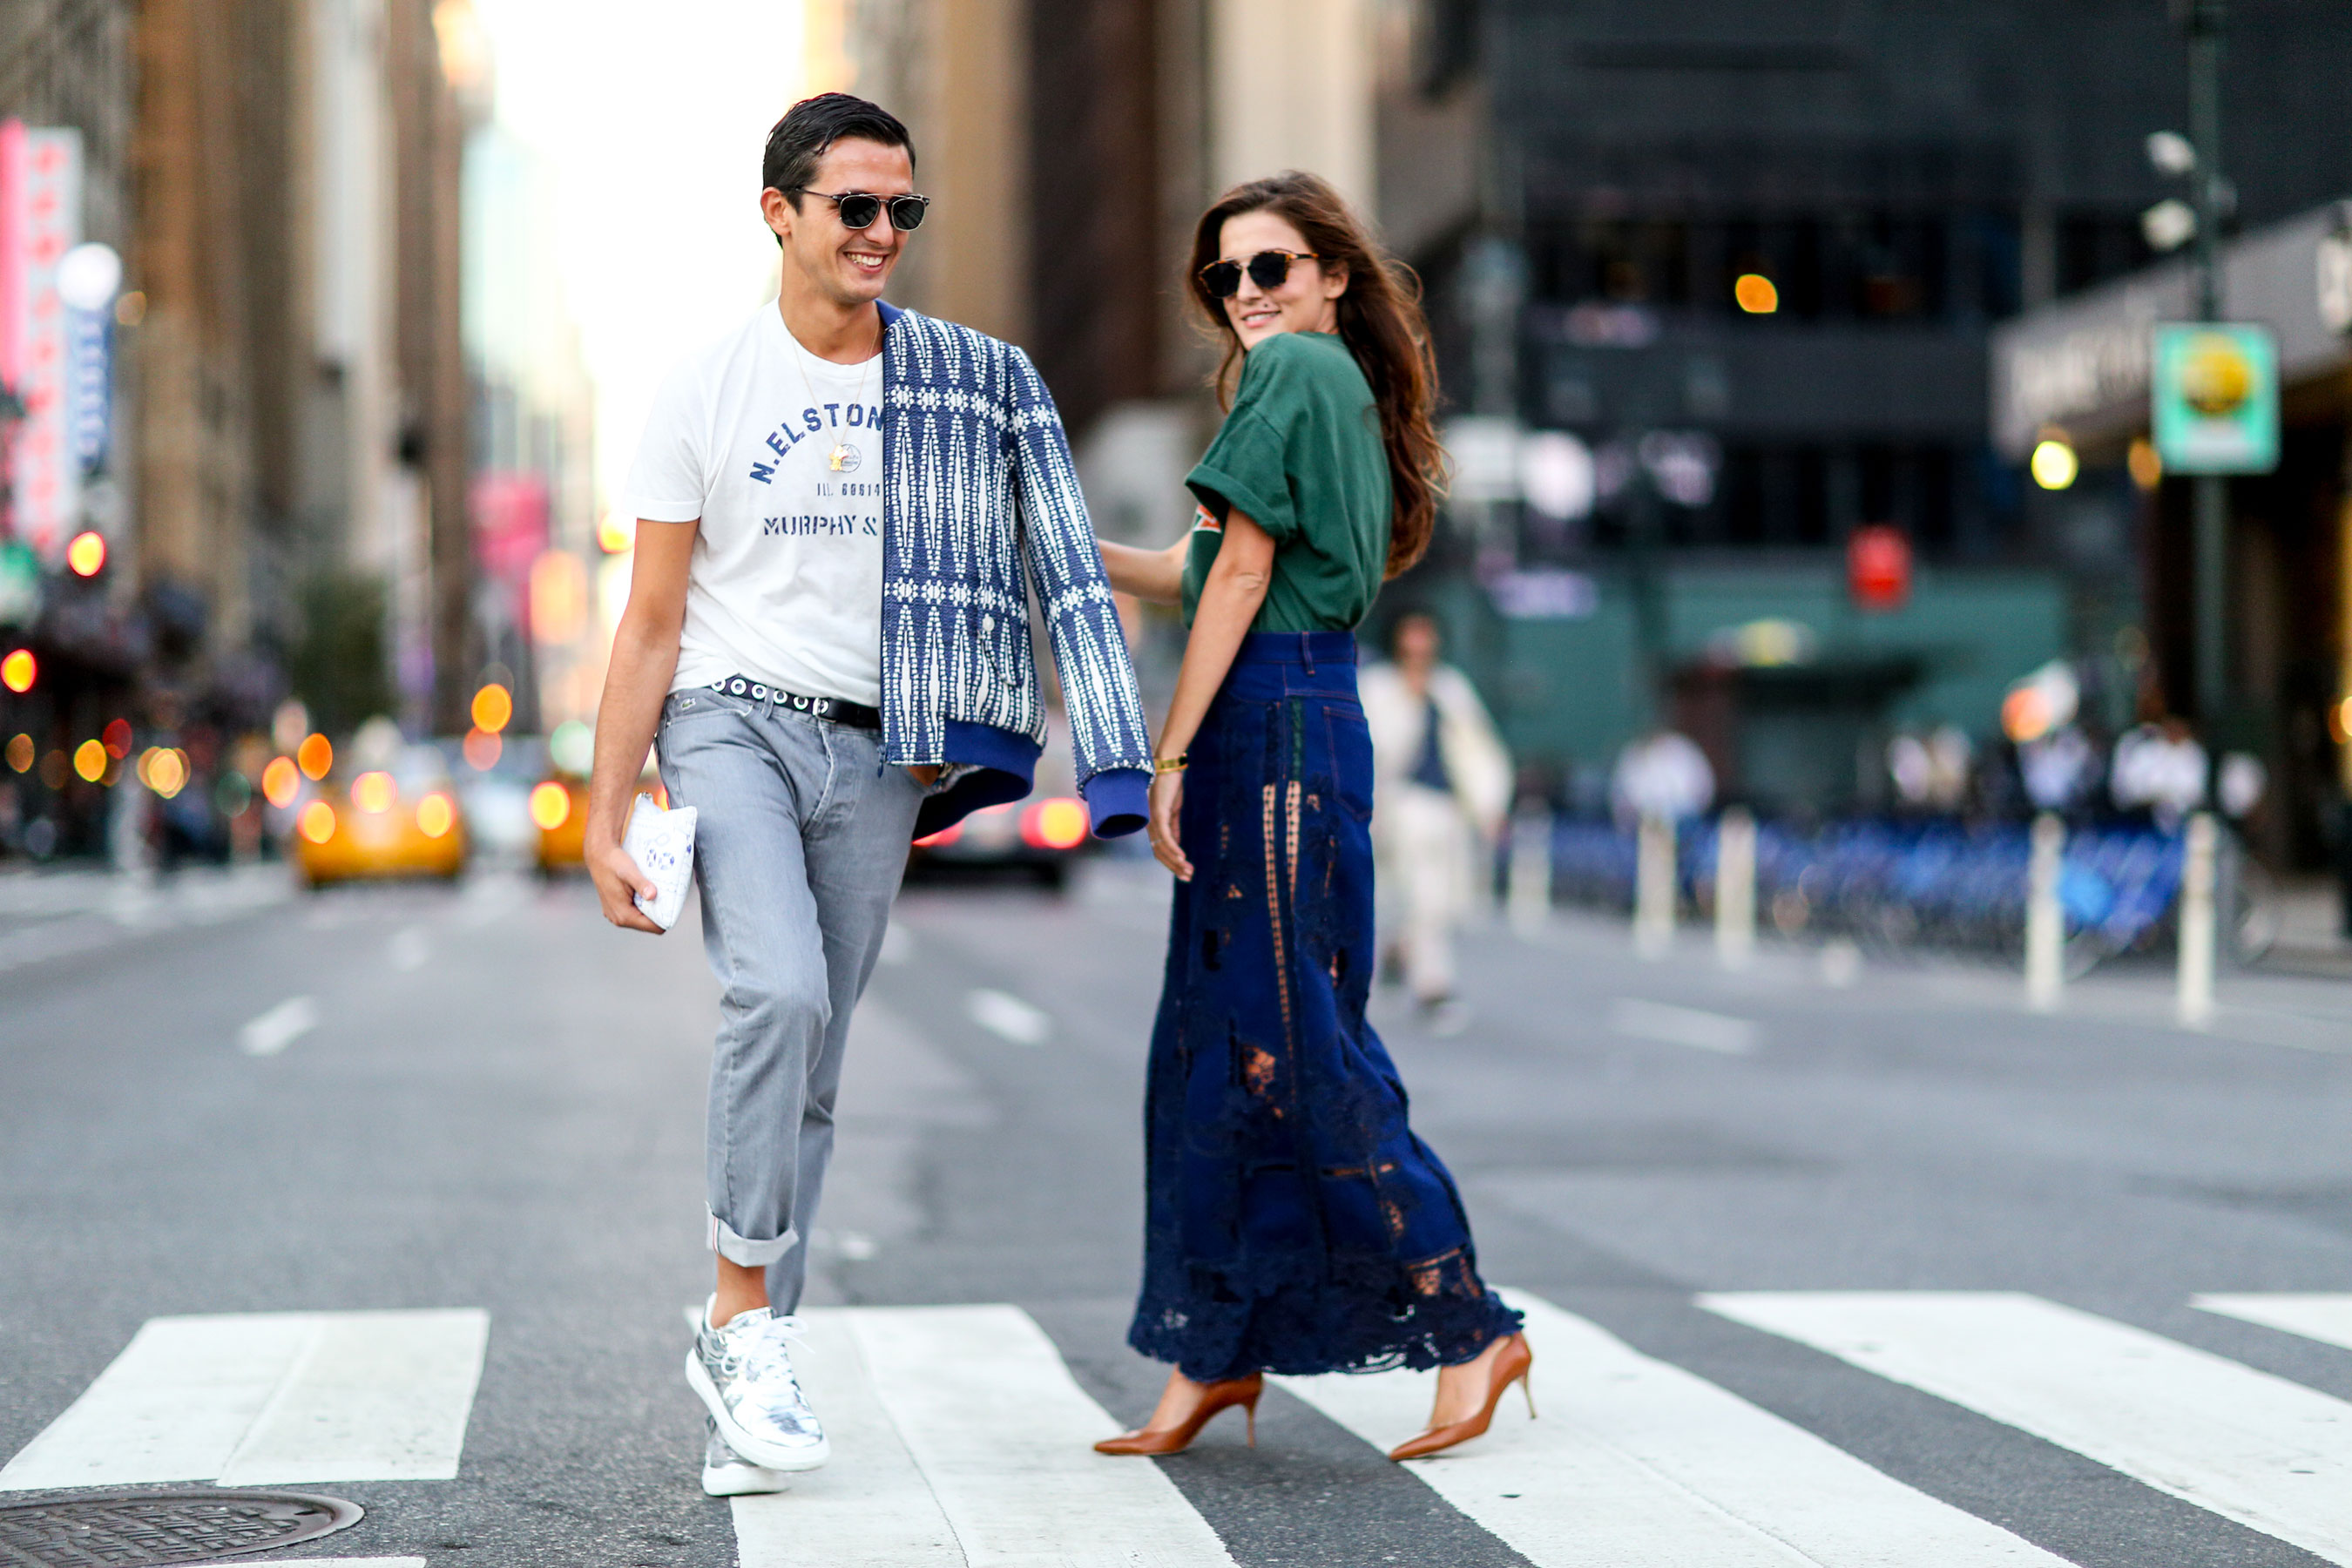 New York Fashion Week Spring Summer 2016 Street Style Thecreativepattern 39 S Blog